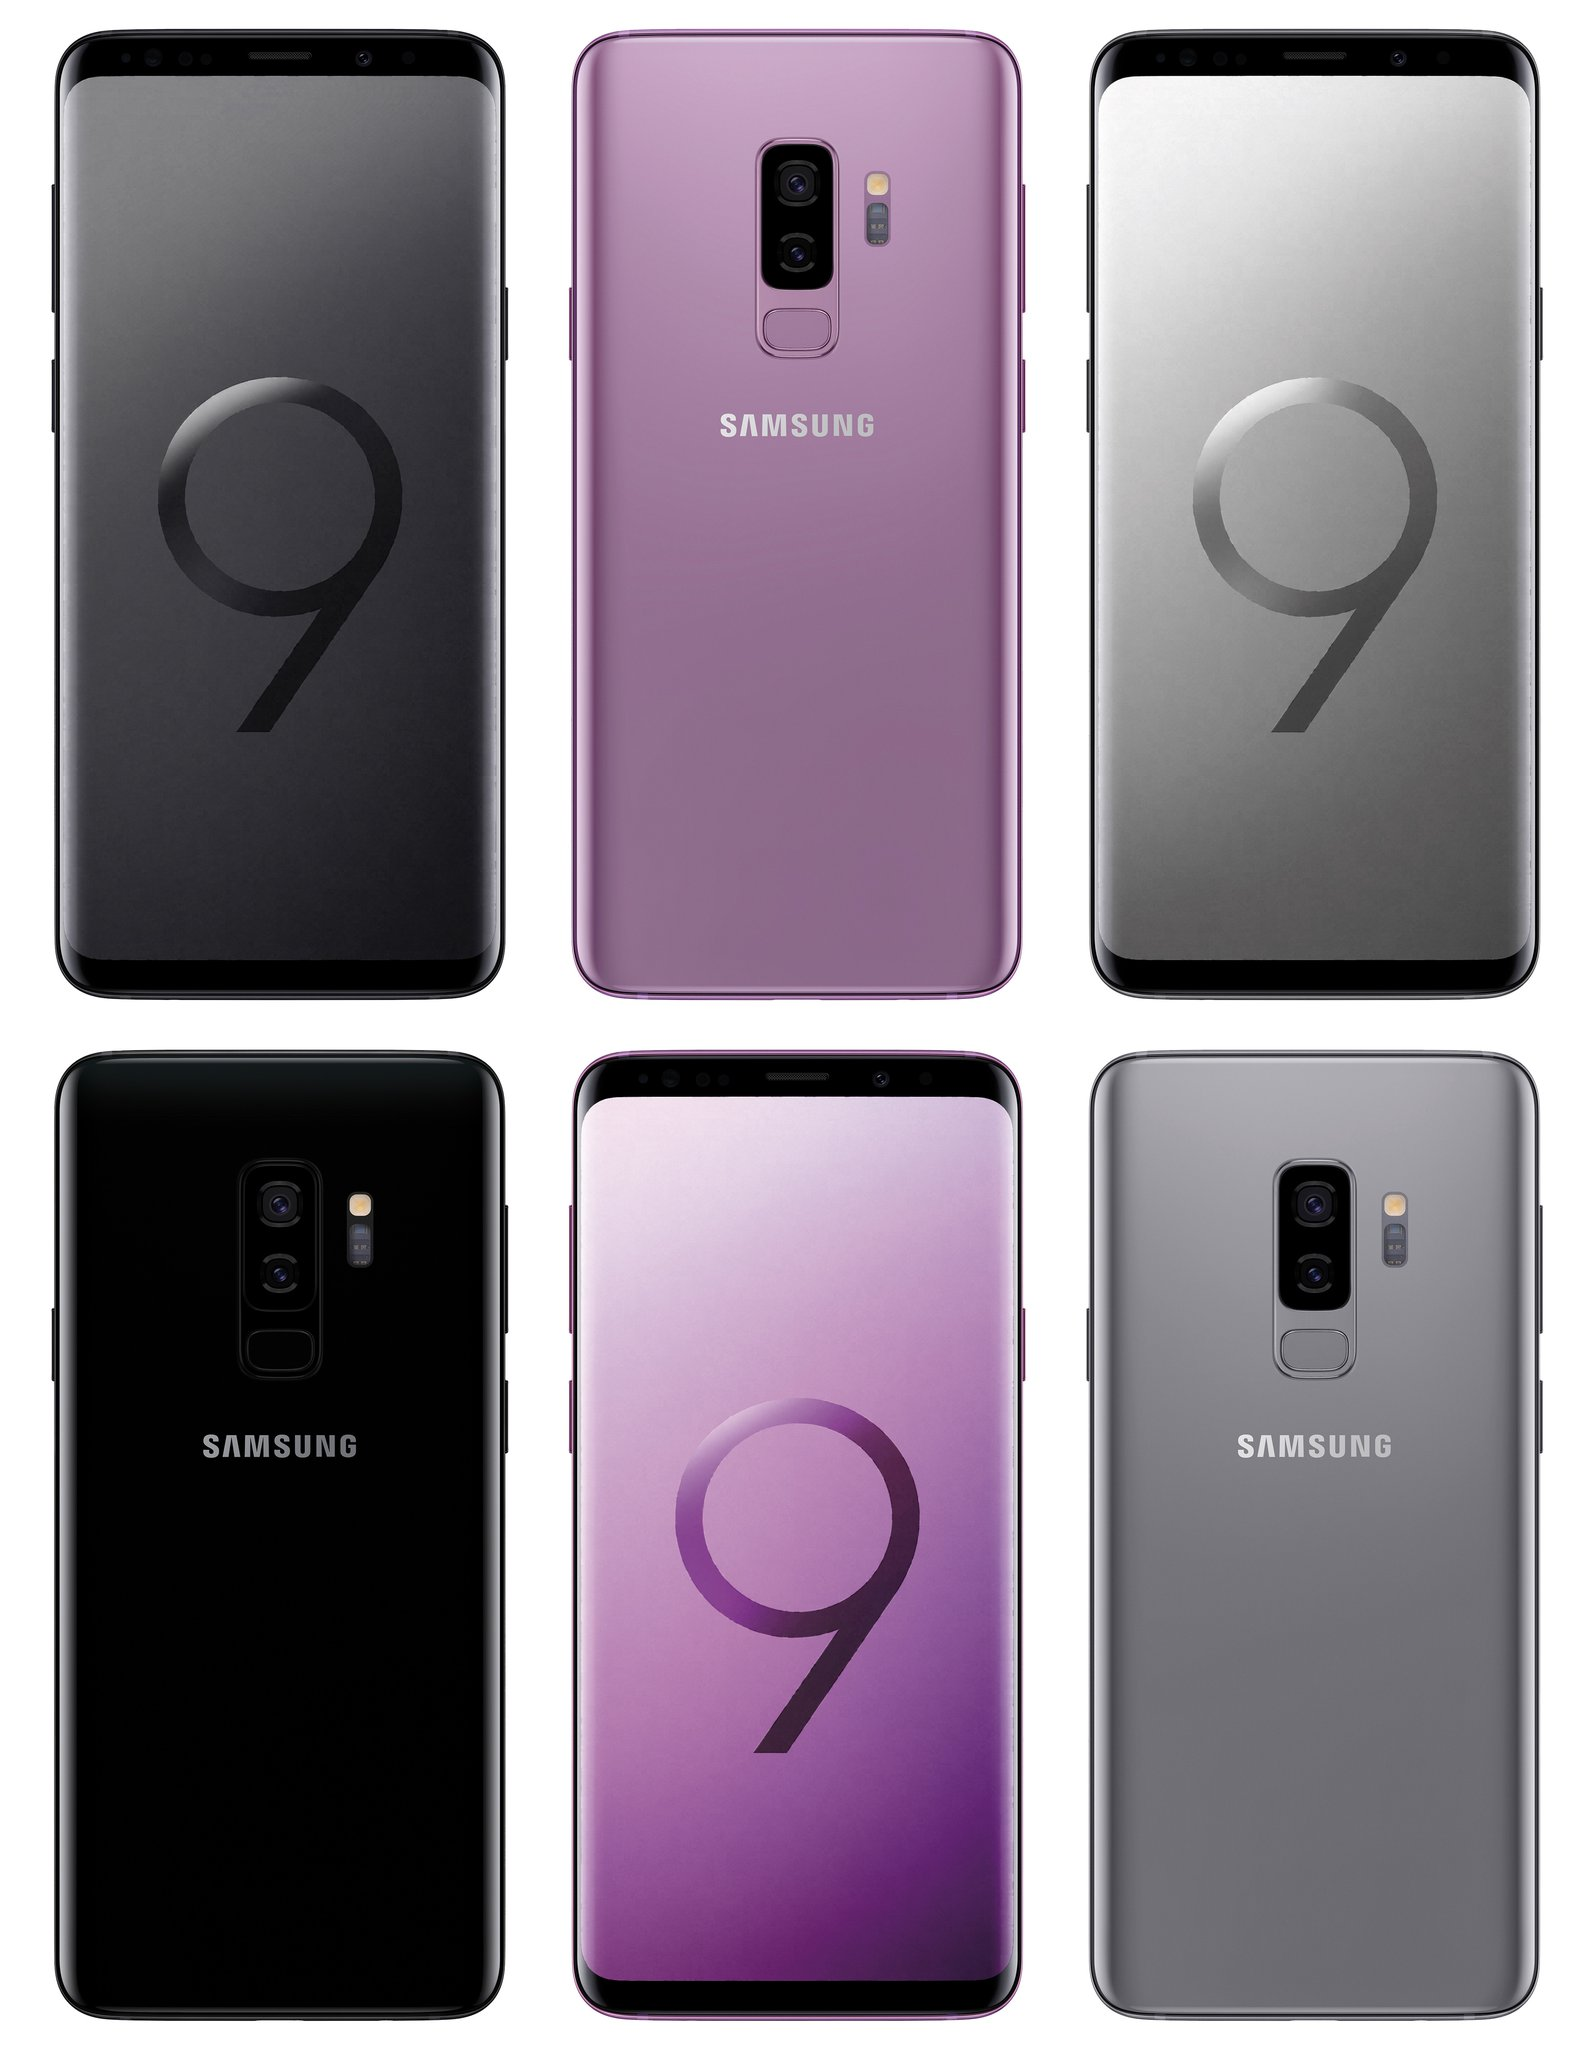 samsung galaxy s9 rumour roundup specs camera new features availability lowyat net. Black Bedroom Furniture Sets. Home Design Ideas